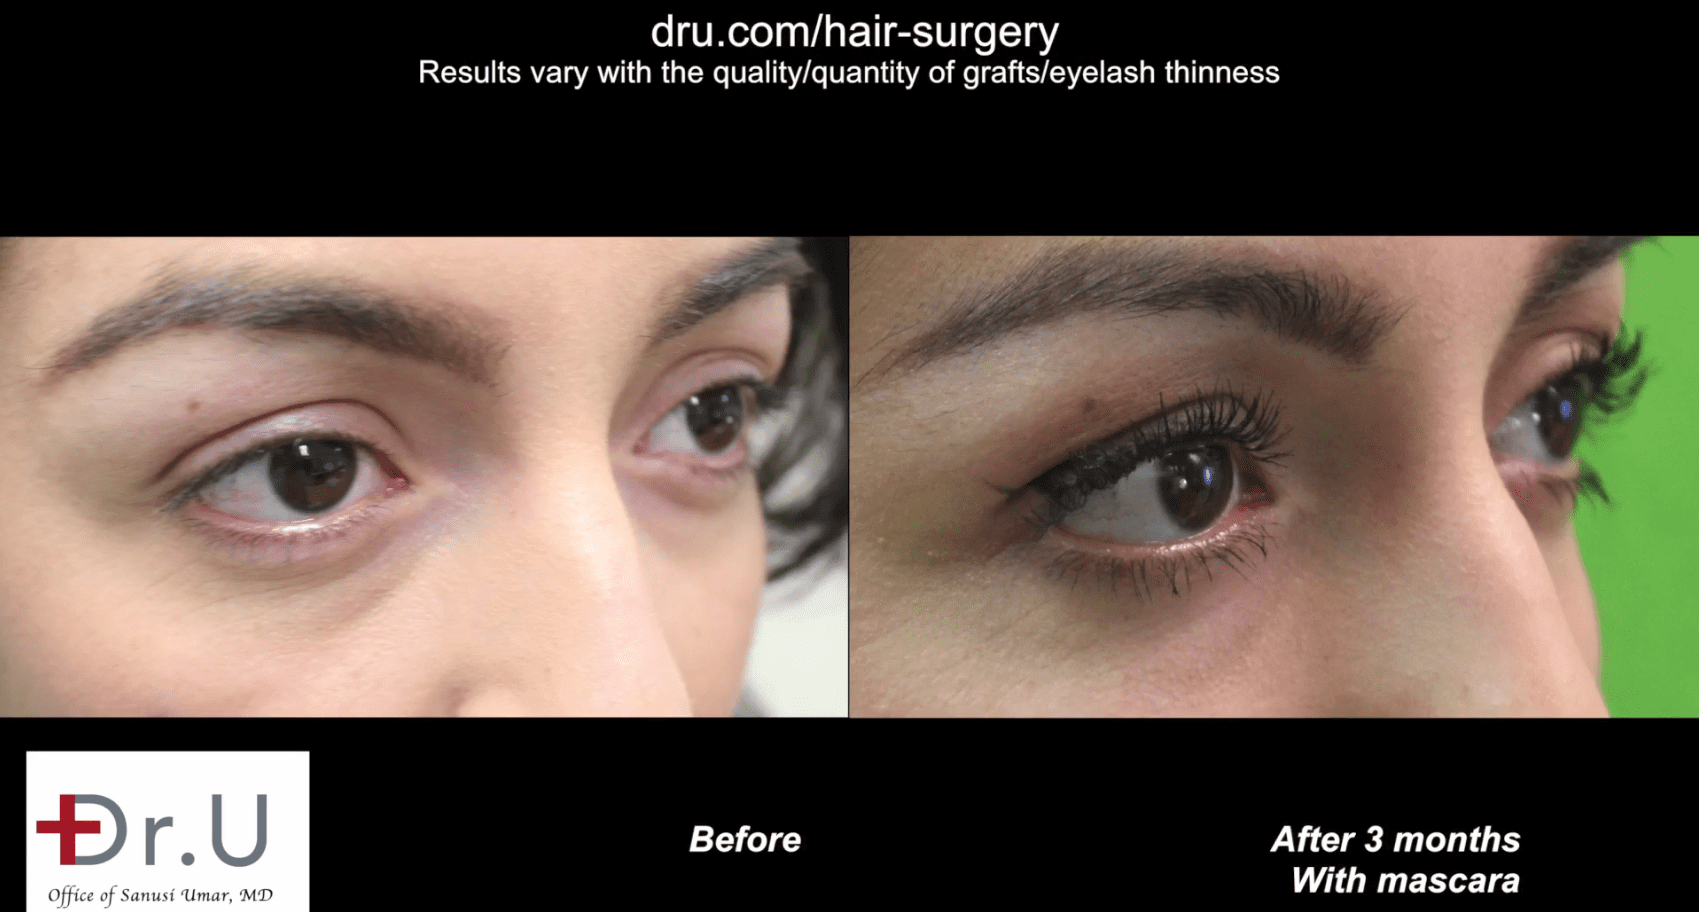 Dr.U was able to create natural looking curvature and angles for the transplanted lashes. This eyelash surgery before and after photo is from 3 months after the transplant.*